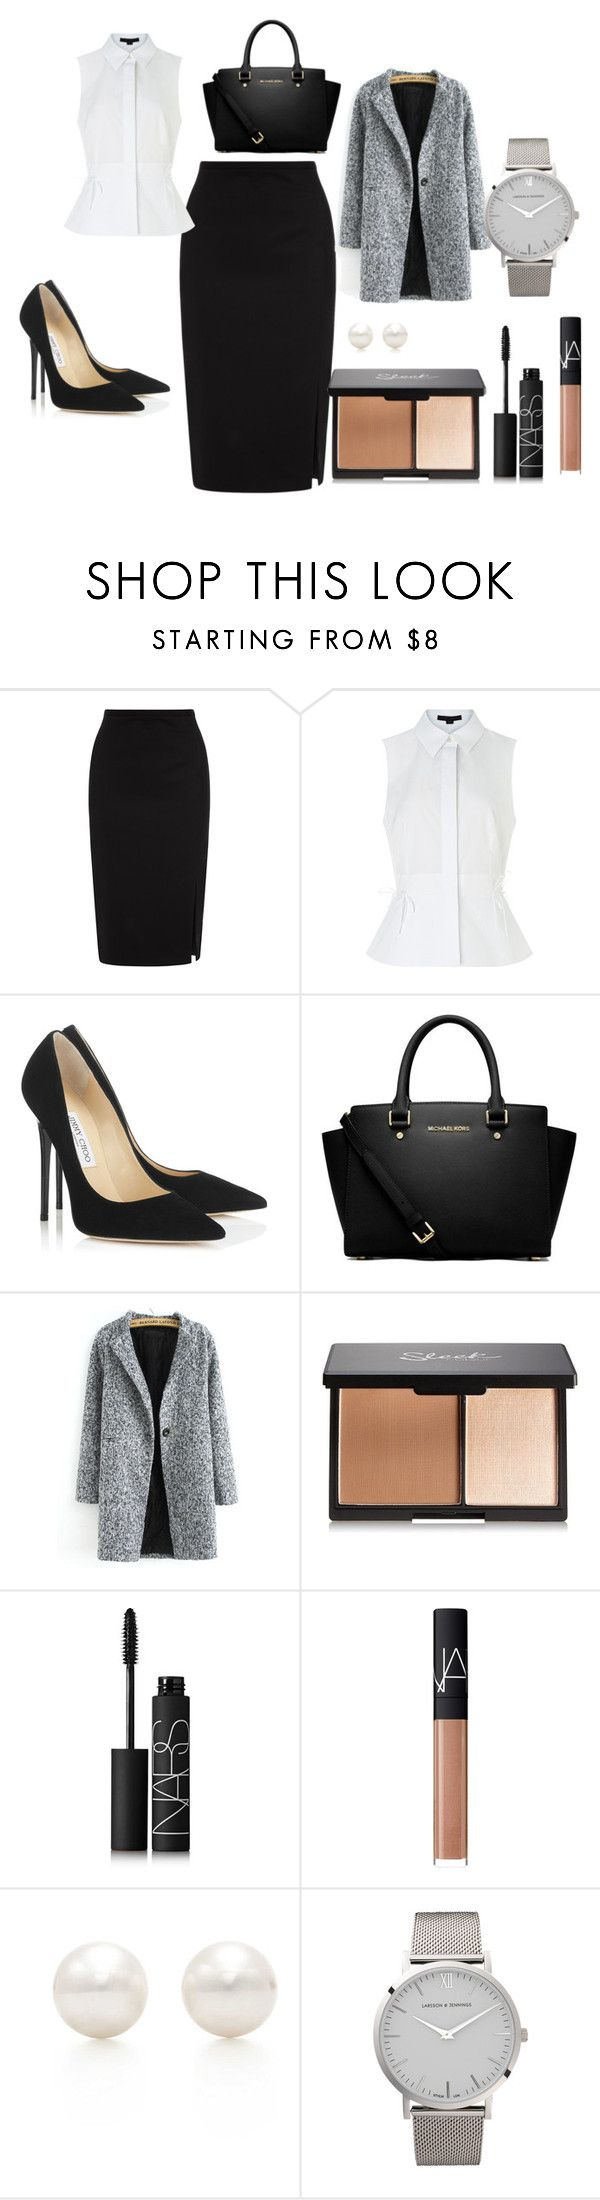 """ODWLH"" by keepsmileanna on Polyvore featuring Oasis, Alexander Wang, Jimmy Choo, MICHAEL Michael Kors, NARS Cosmetics, Tiffany & Co., Larsson & Jennings, women's clothing, women's fashion and women"